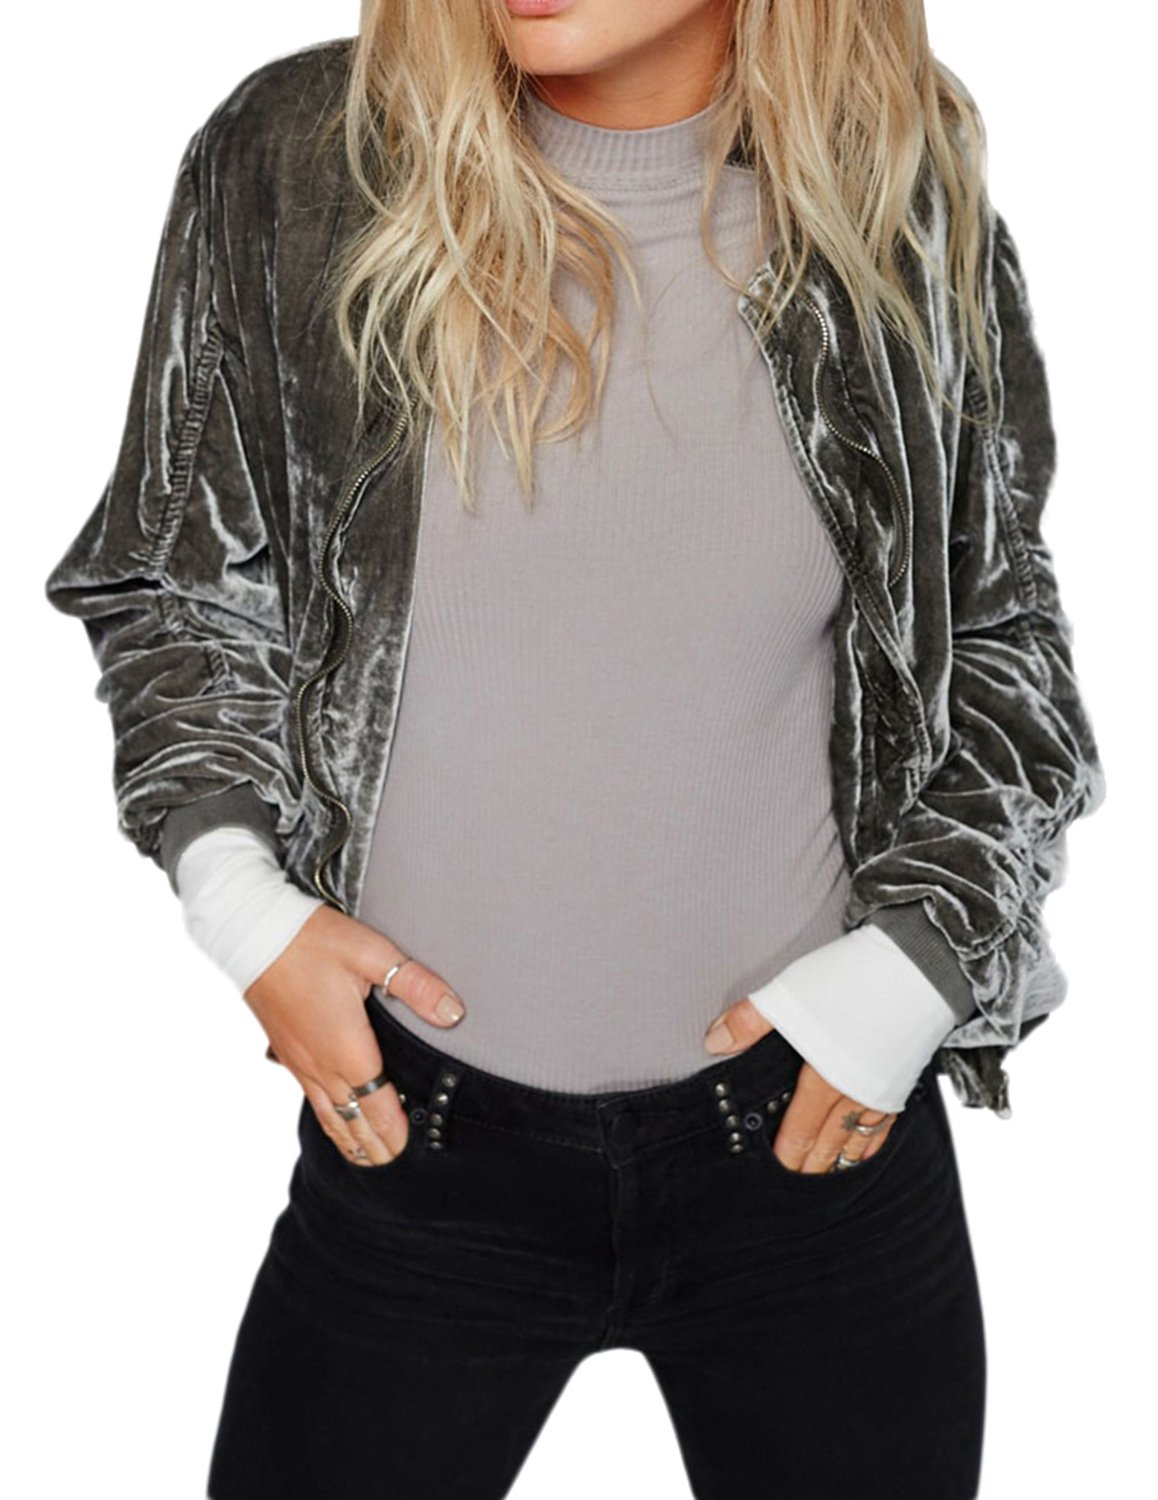 Richlulu Womens Crushed Velvet Ruched Hip Pockets Bomber Biker Jacket Blazer(S,Grey)